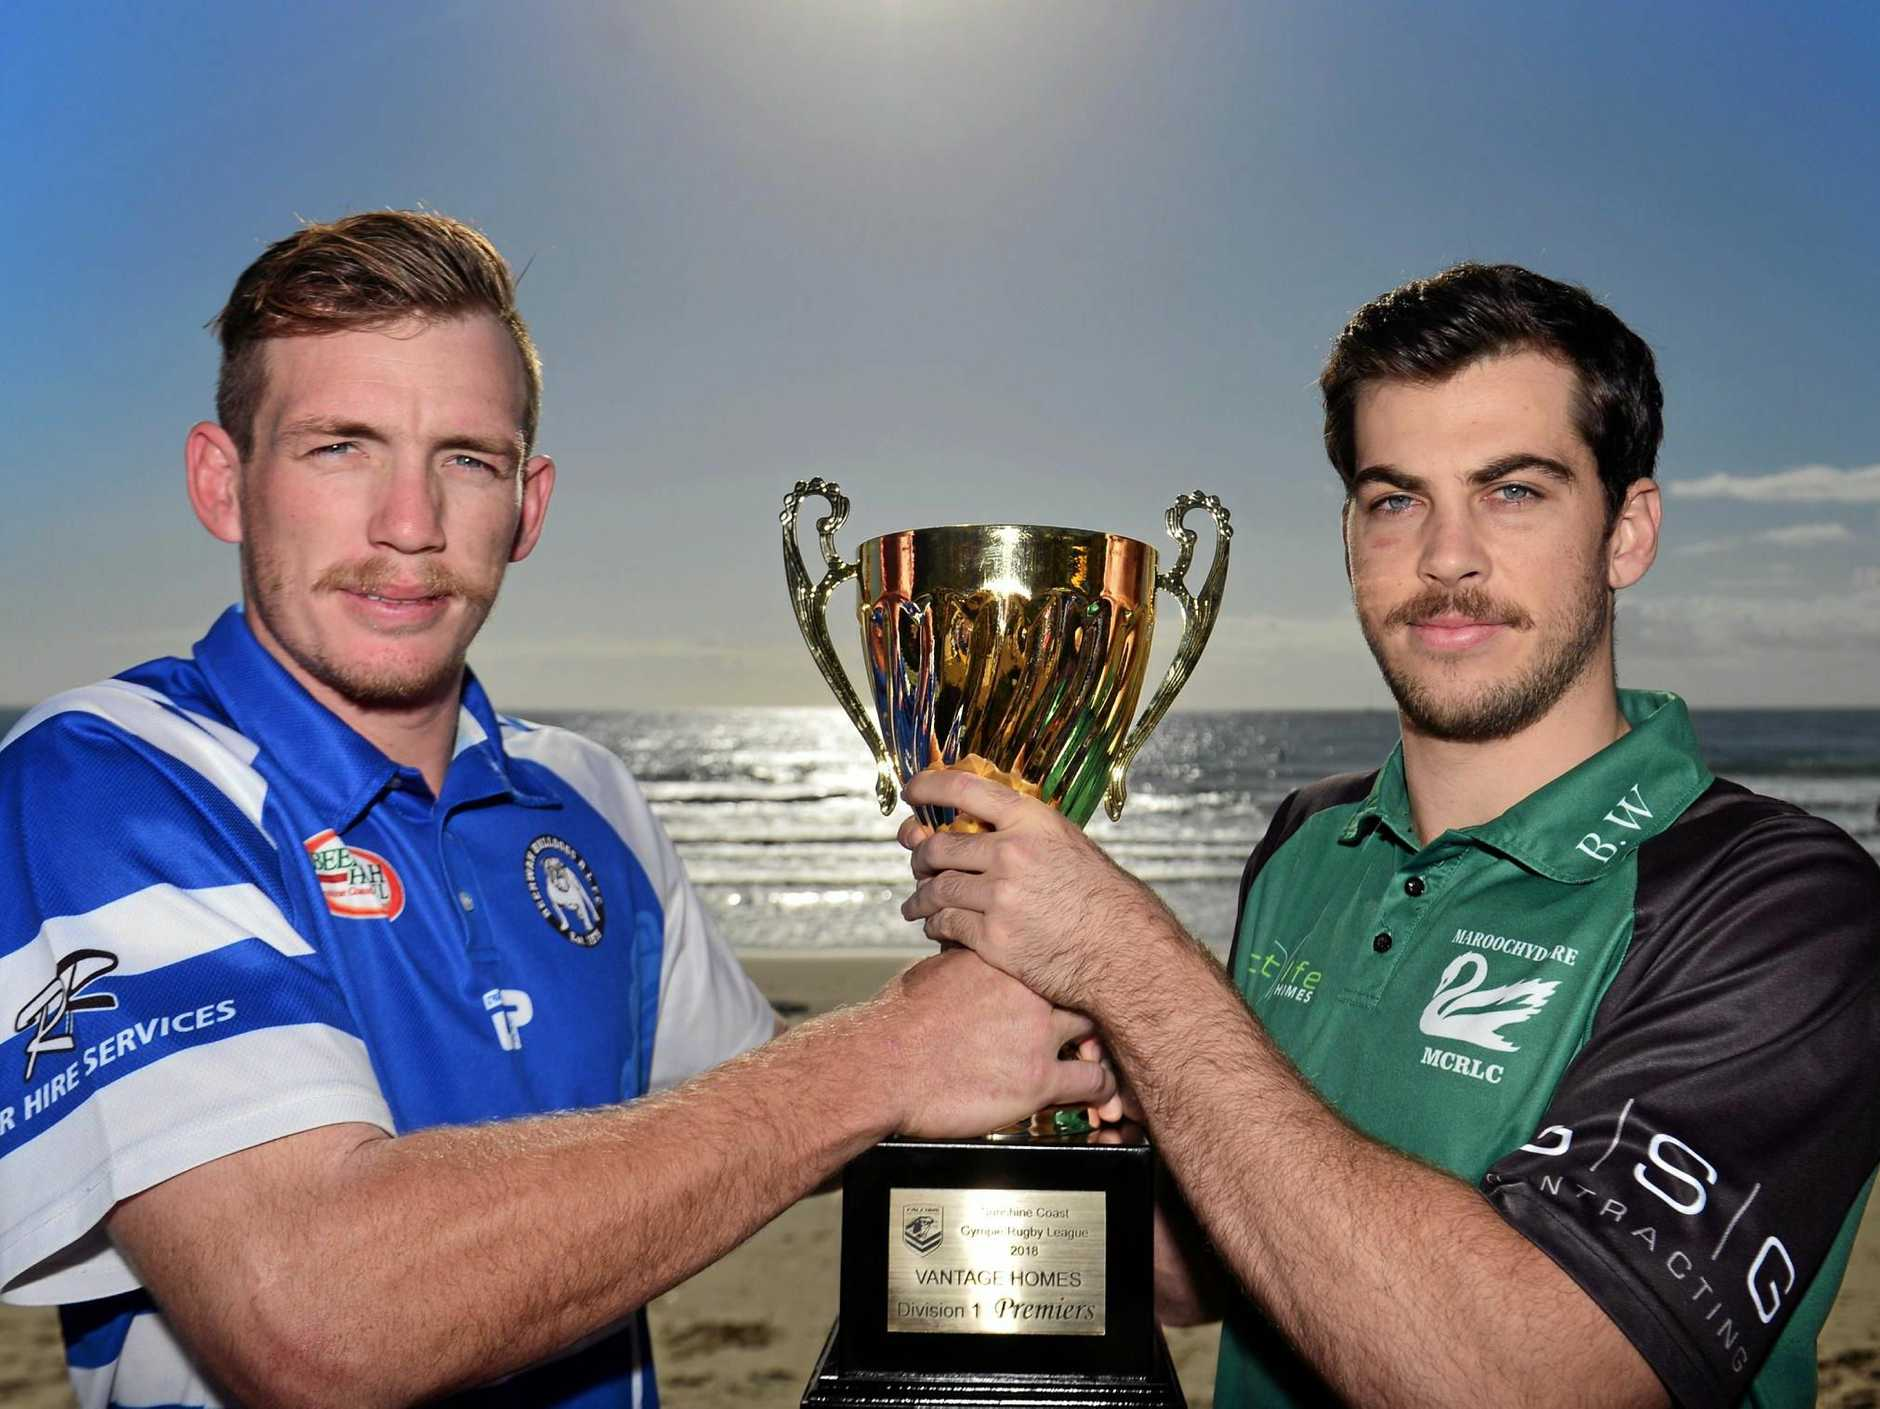 GAME ON: Beerwah Bulldogs club captain Daniel Kidd and Maroochydore Swans captain Josh Buckland with the season silverware ahead of the big clash today.